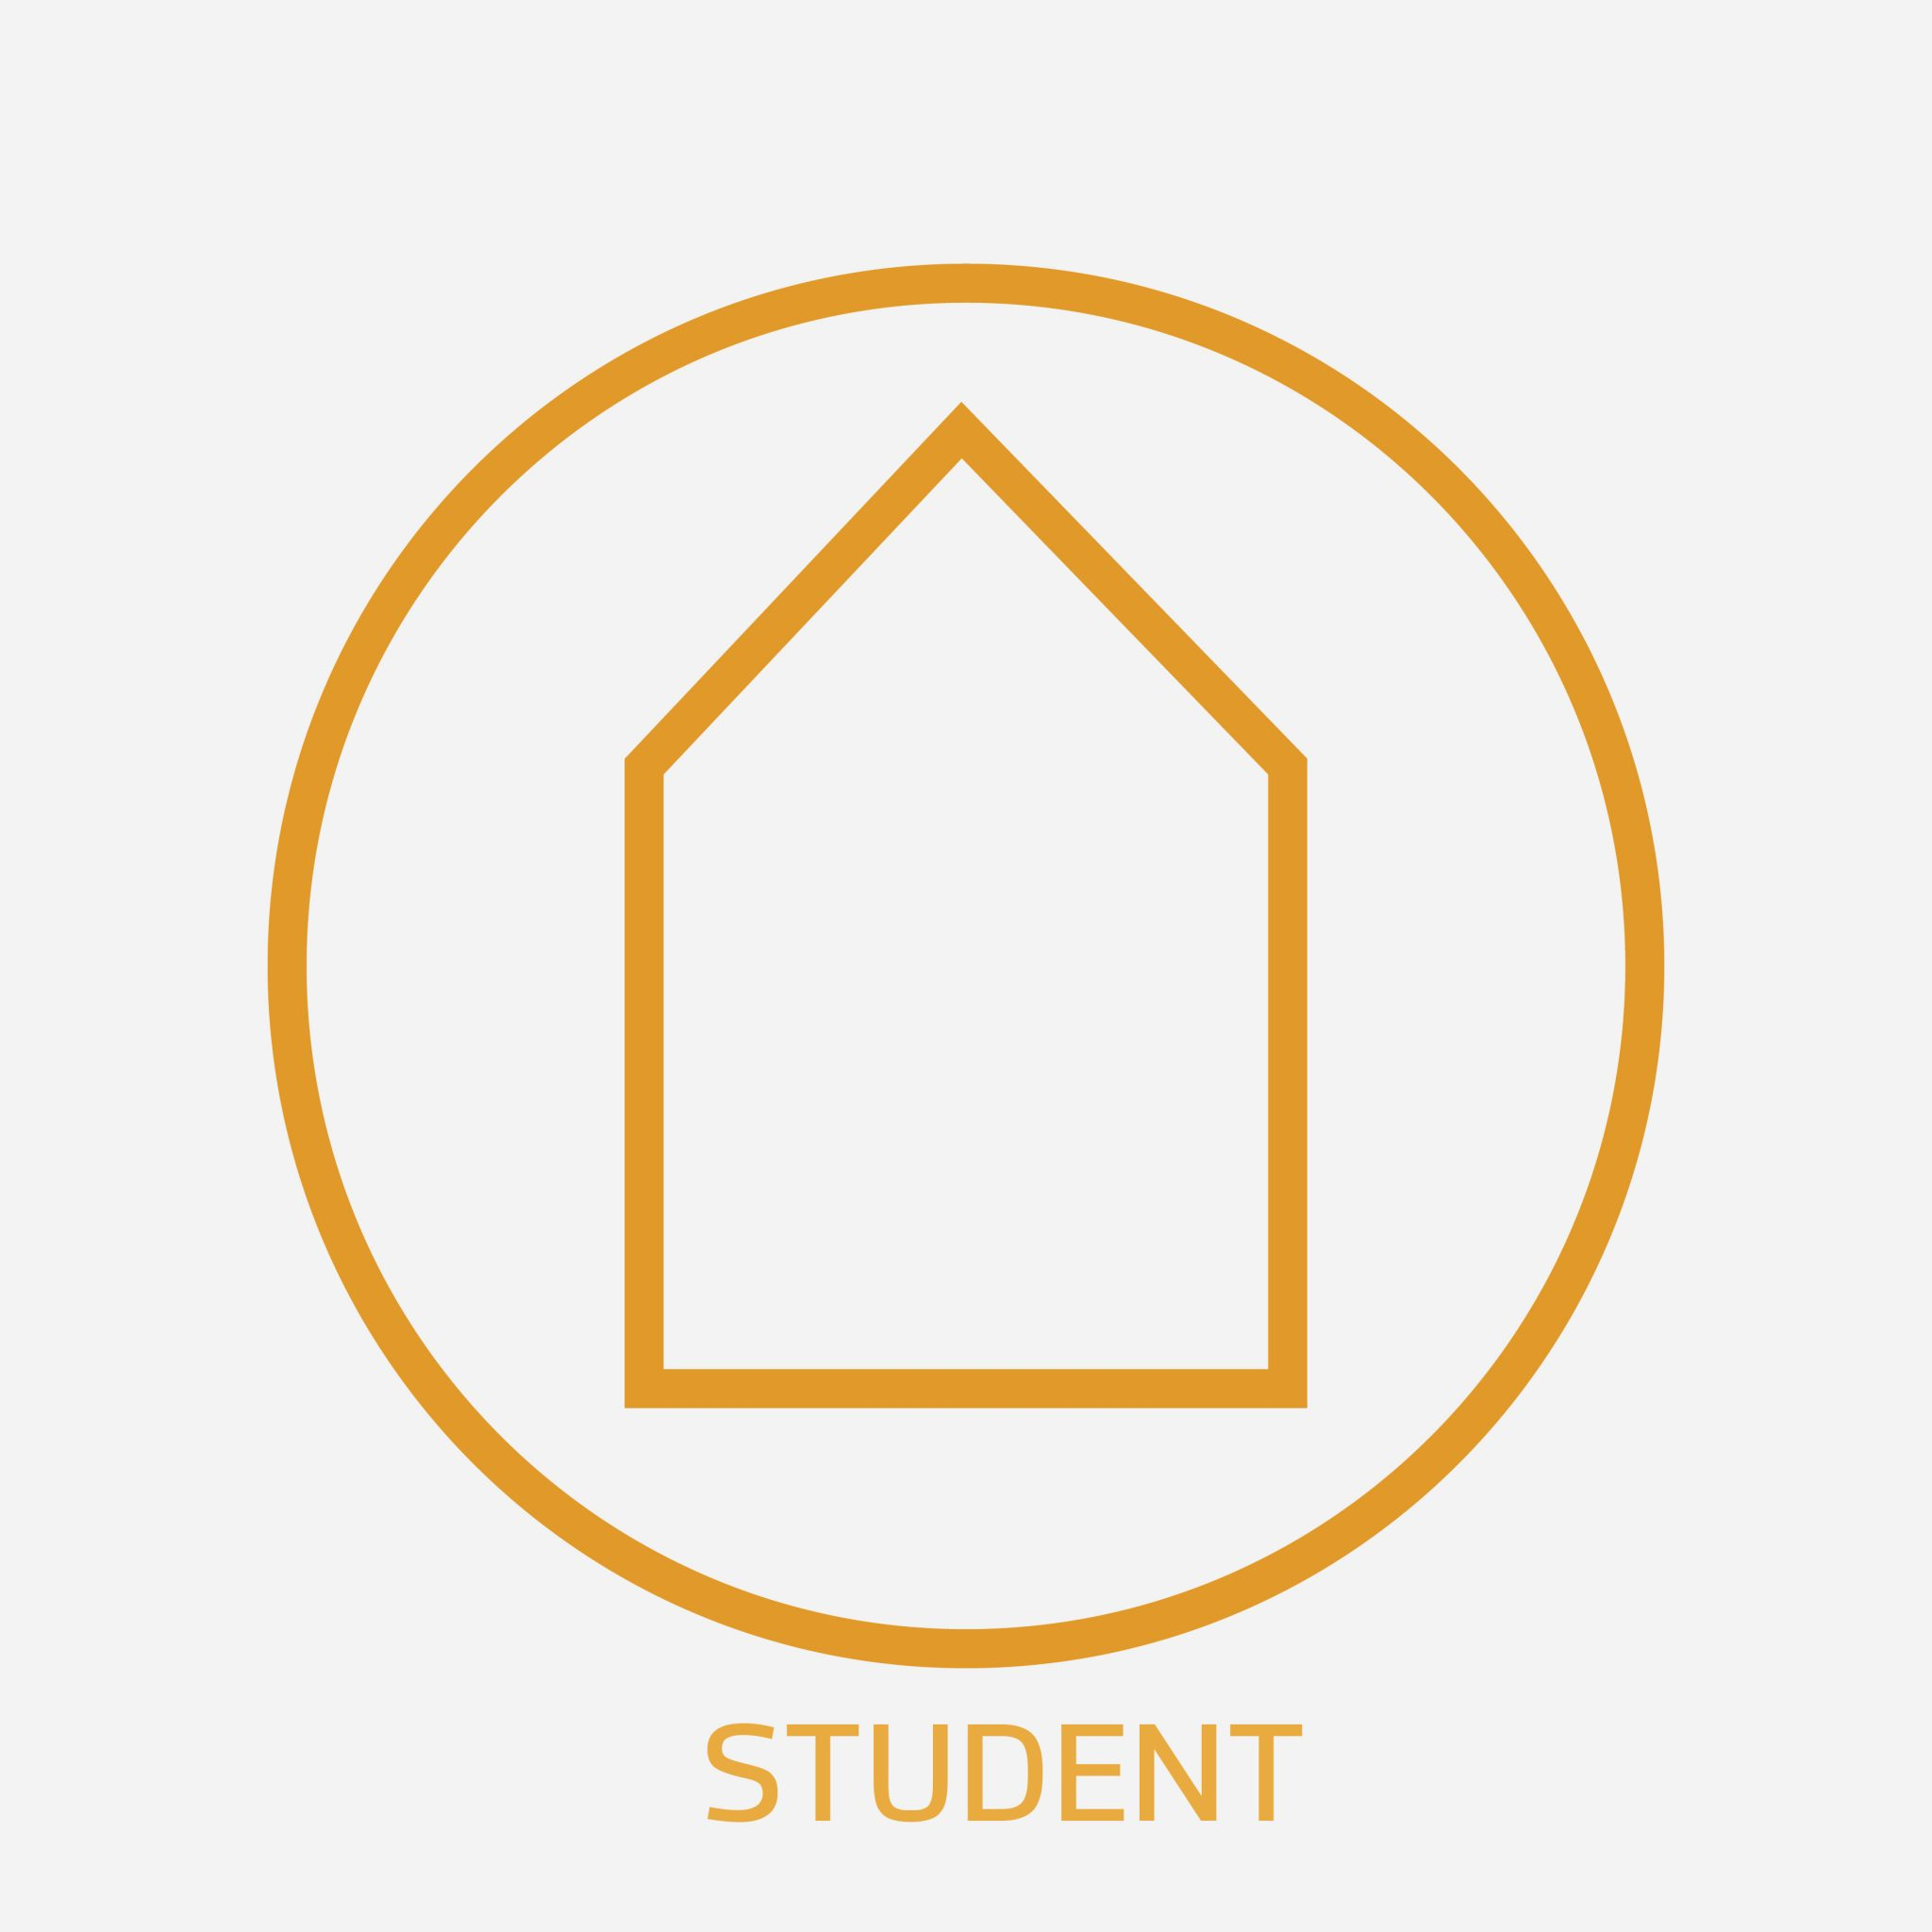 Orange Guildhouse logo with a white background, with the text 'student' below